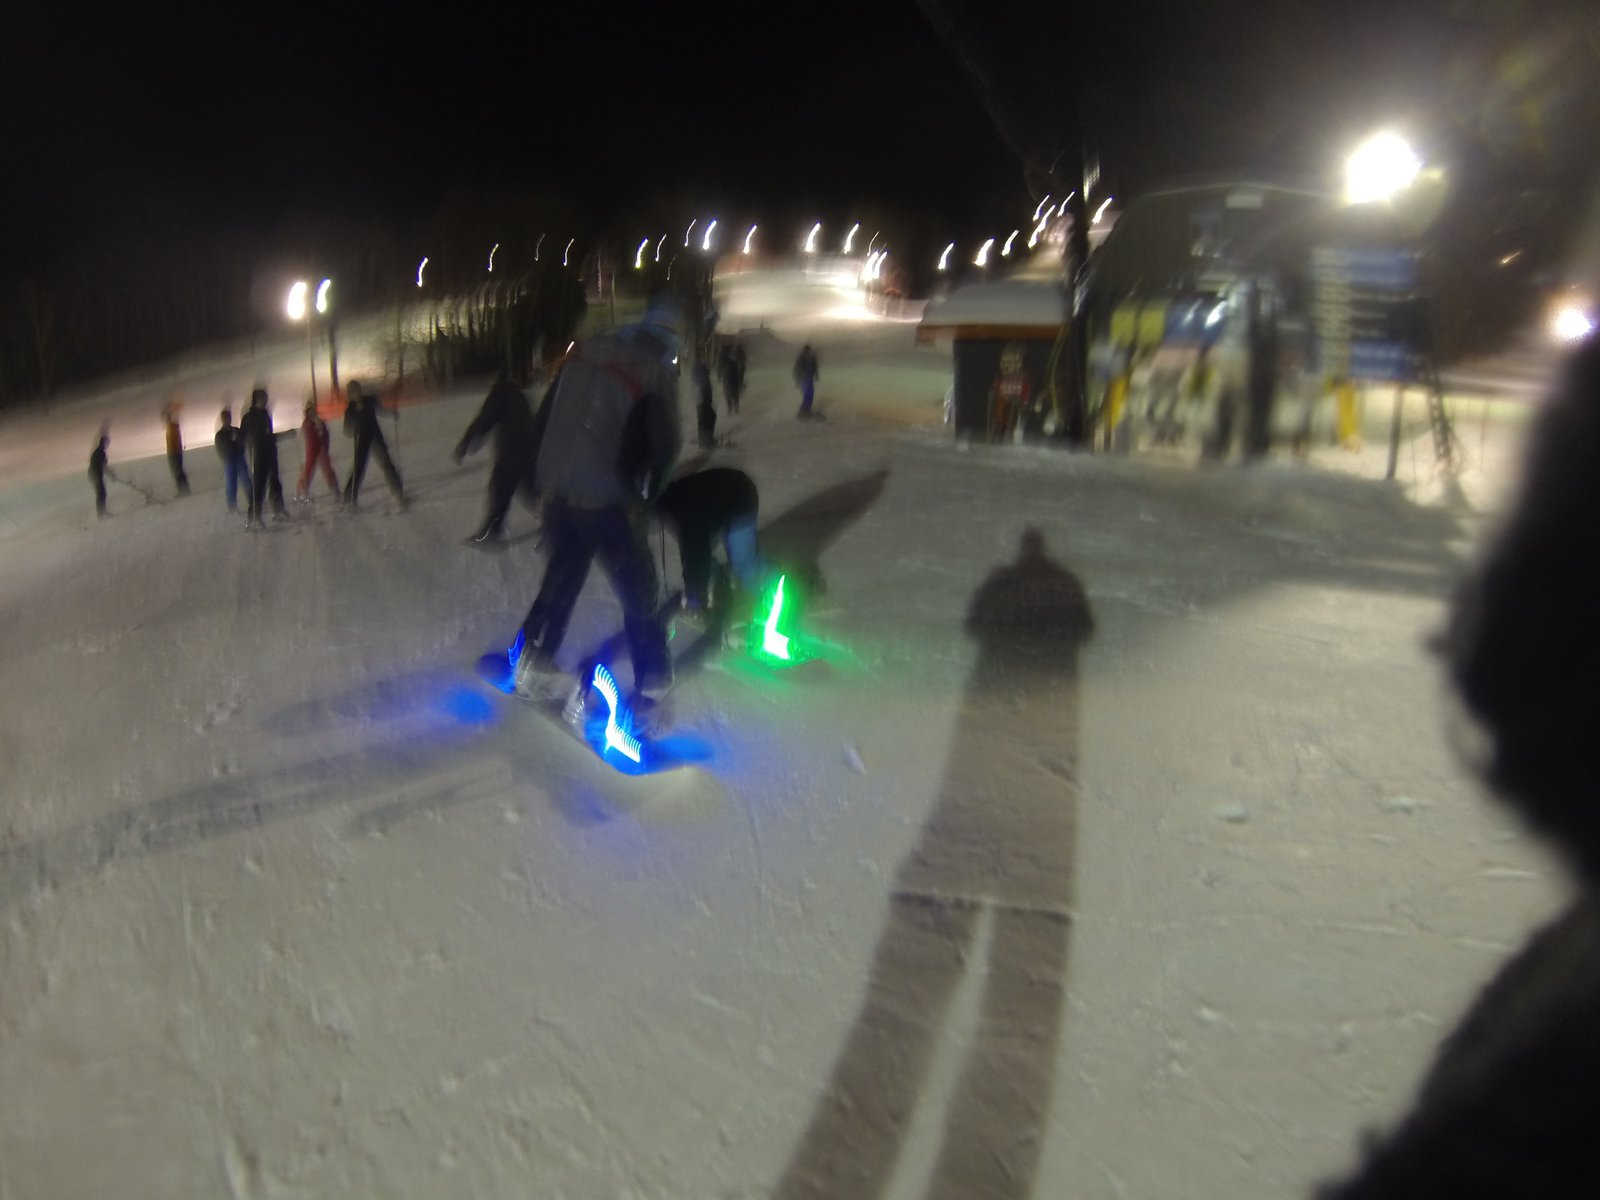 Ready to hit the slopes with latest Third Kind snowboard/skii lights